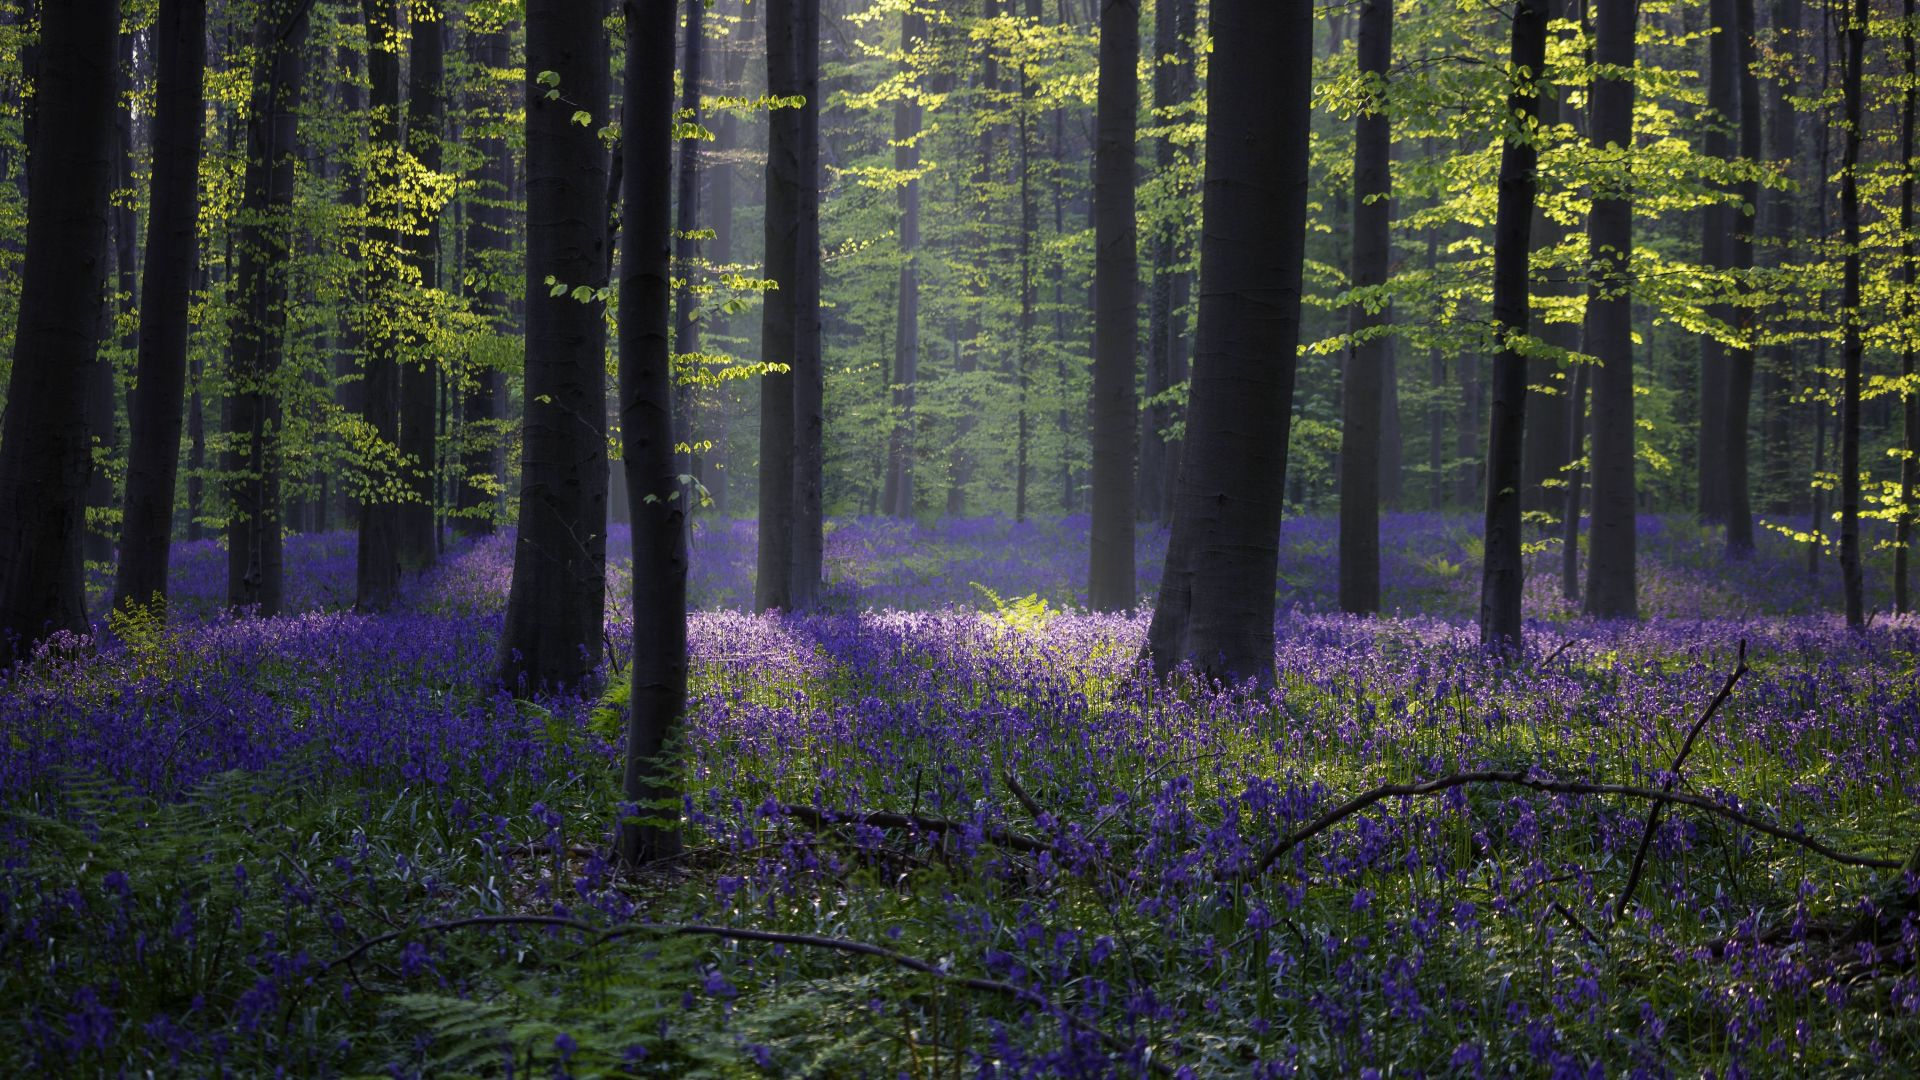 Early Fall Hd Wallpaper Wallpaper Forest Bluebell Sunlight Spring Halle